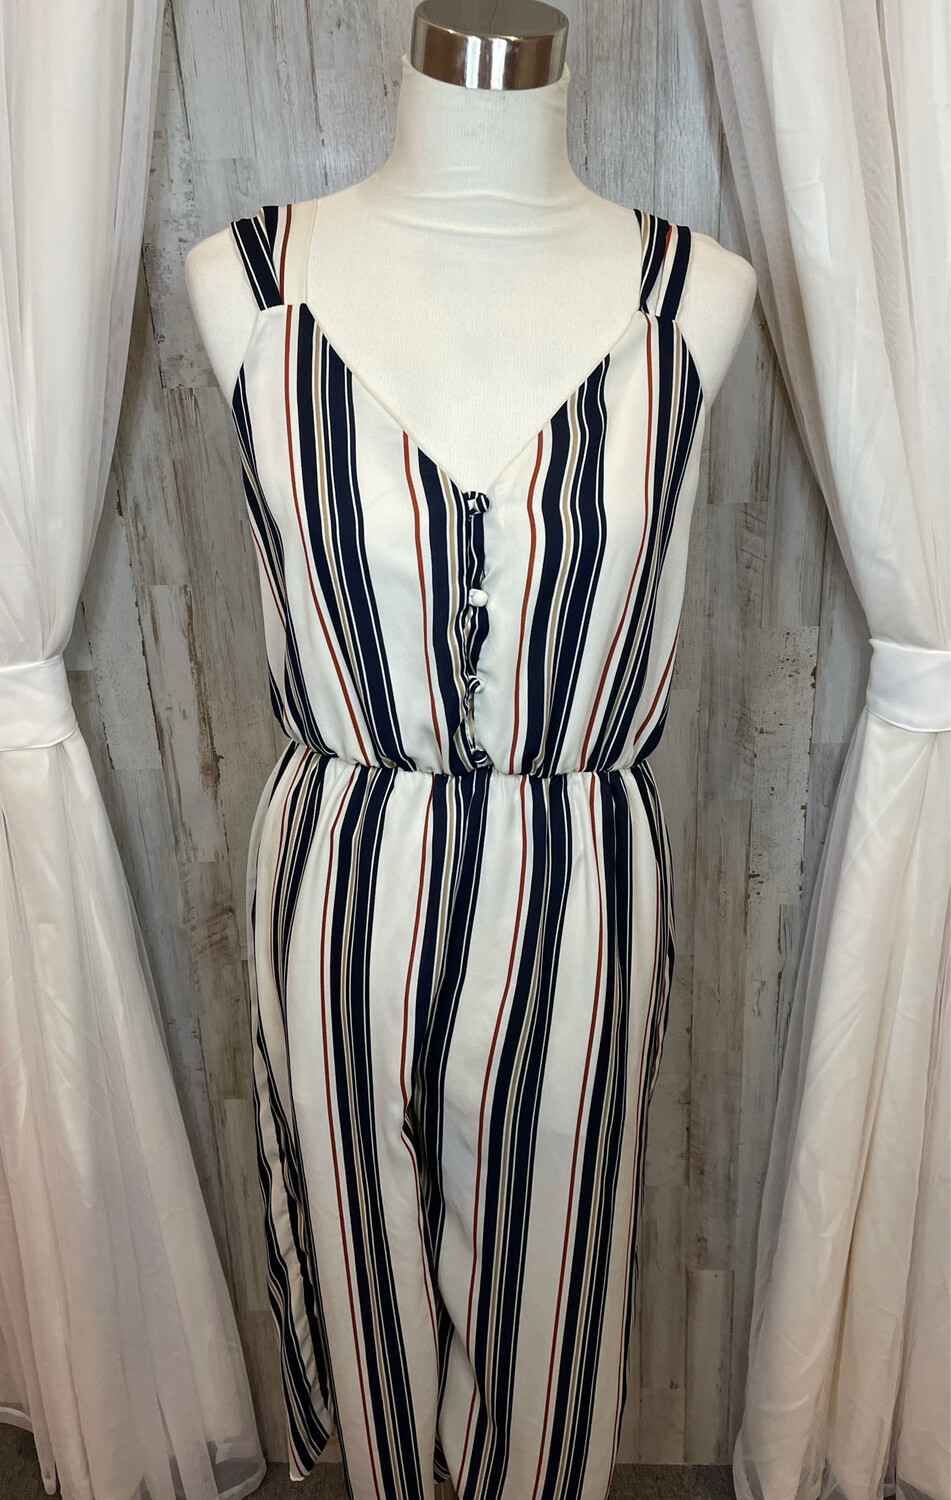 Sienna Sky Cream & Navy Striped Cropped Jumpsuit - L